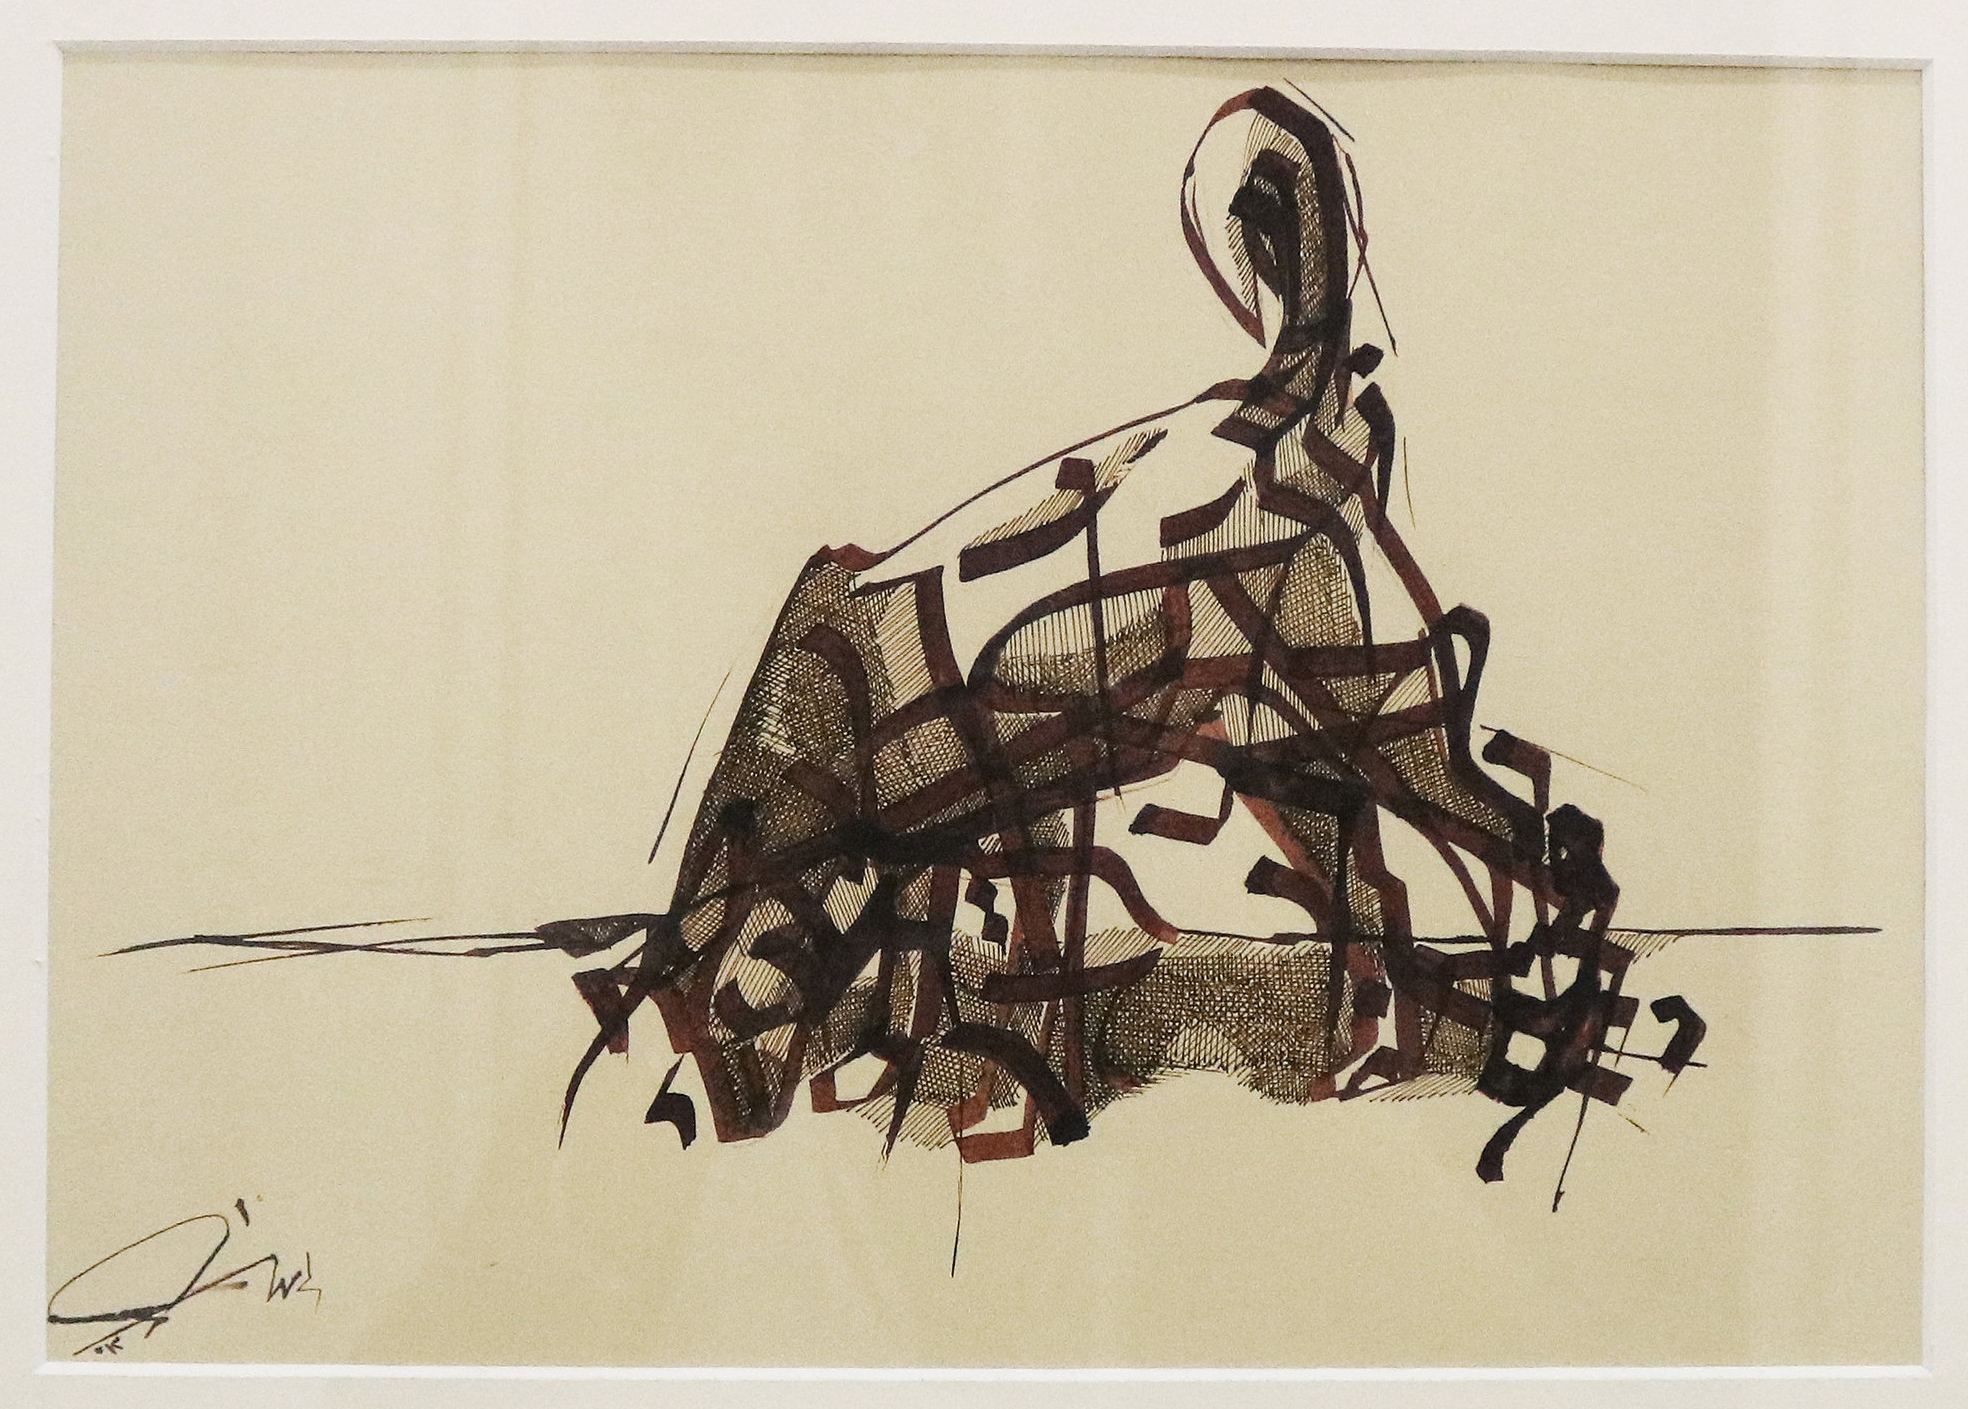 Islam Zaher, Study of a Dog, 35 x 25 cm, Brown ink on coloured paper, 2012. Courtesy of Gypsum Gallery.